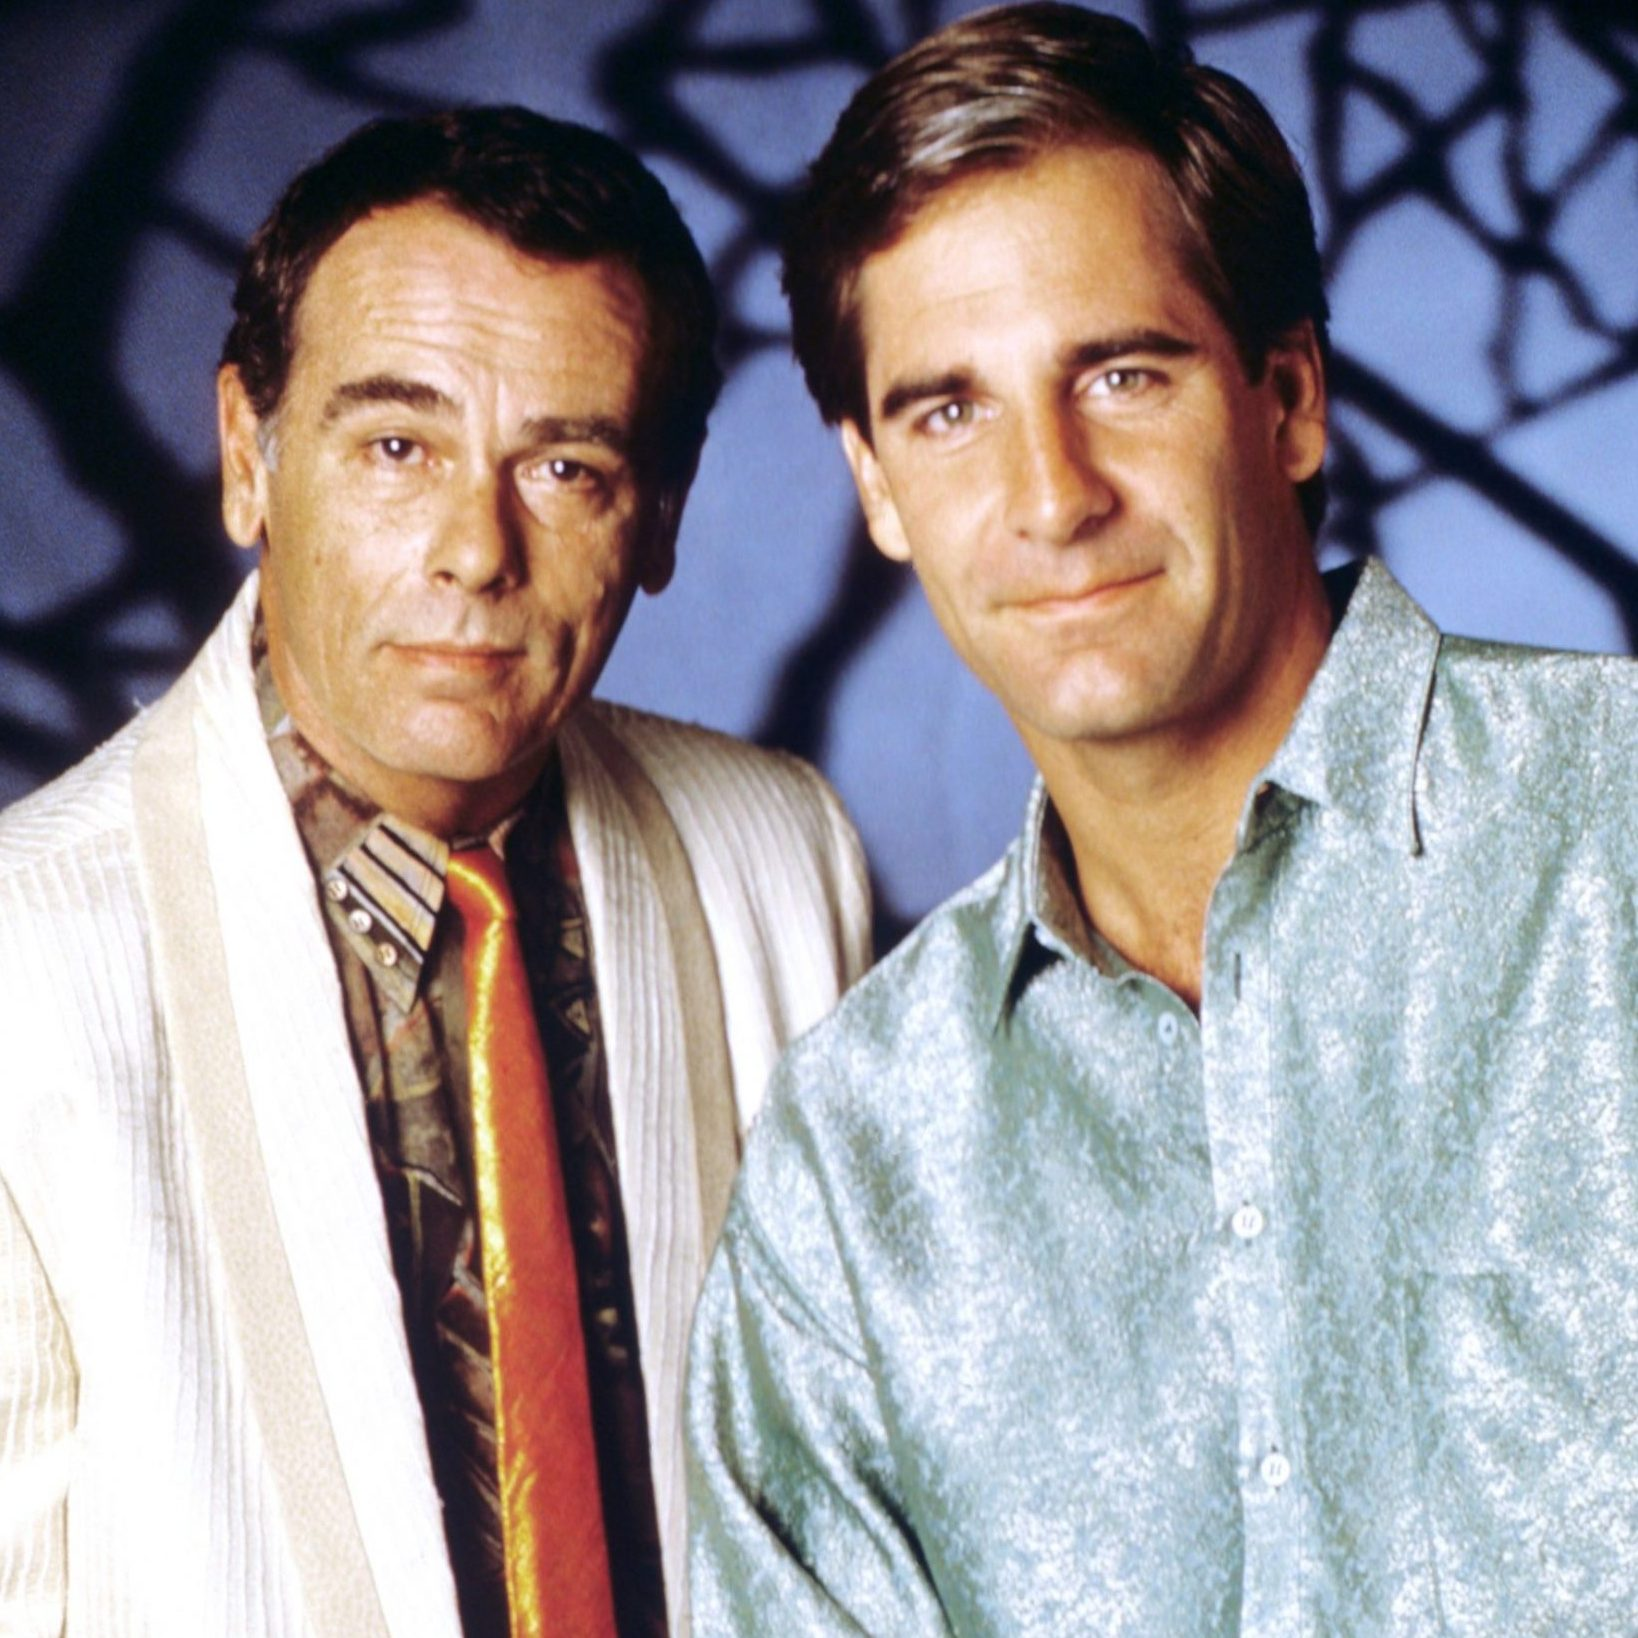 tv greatest 80s shows 12 scaled e1603800388782 20 Facts About Quantum Leap That'll Really Take You Back